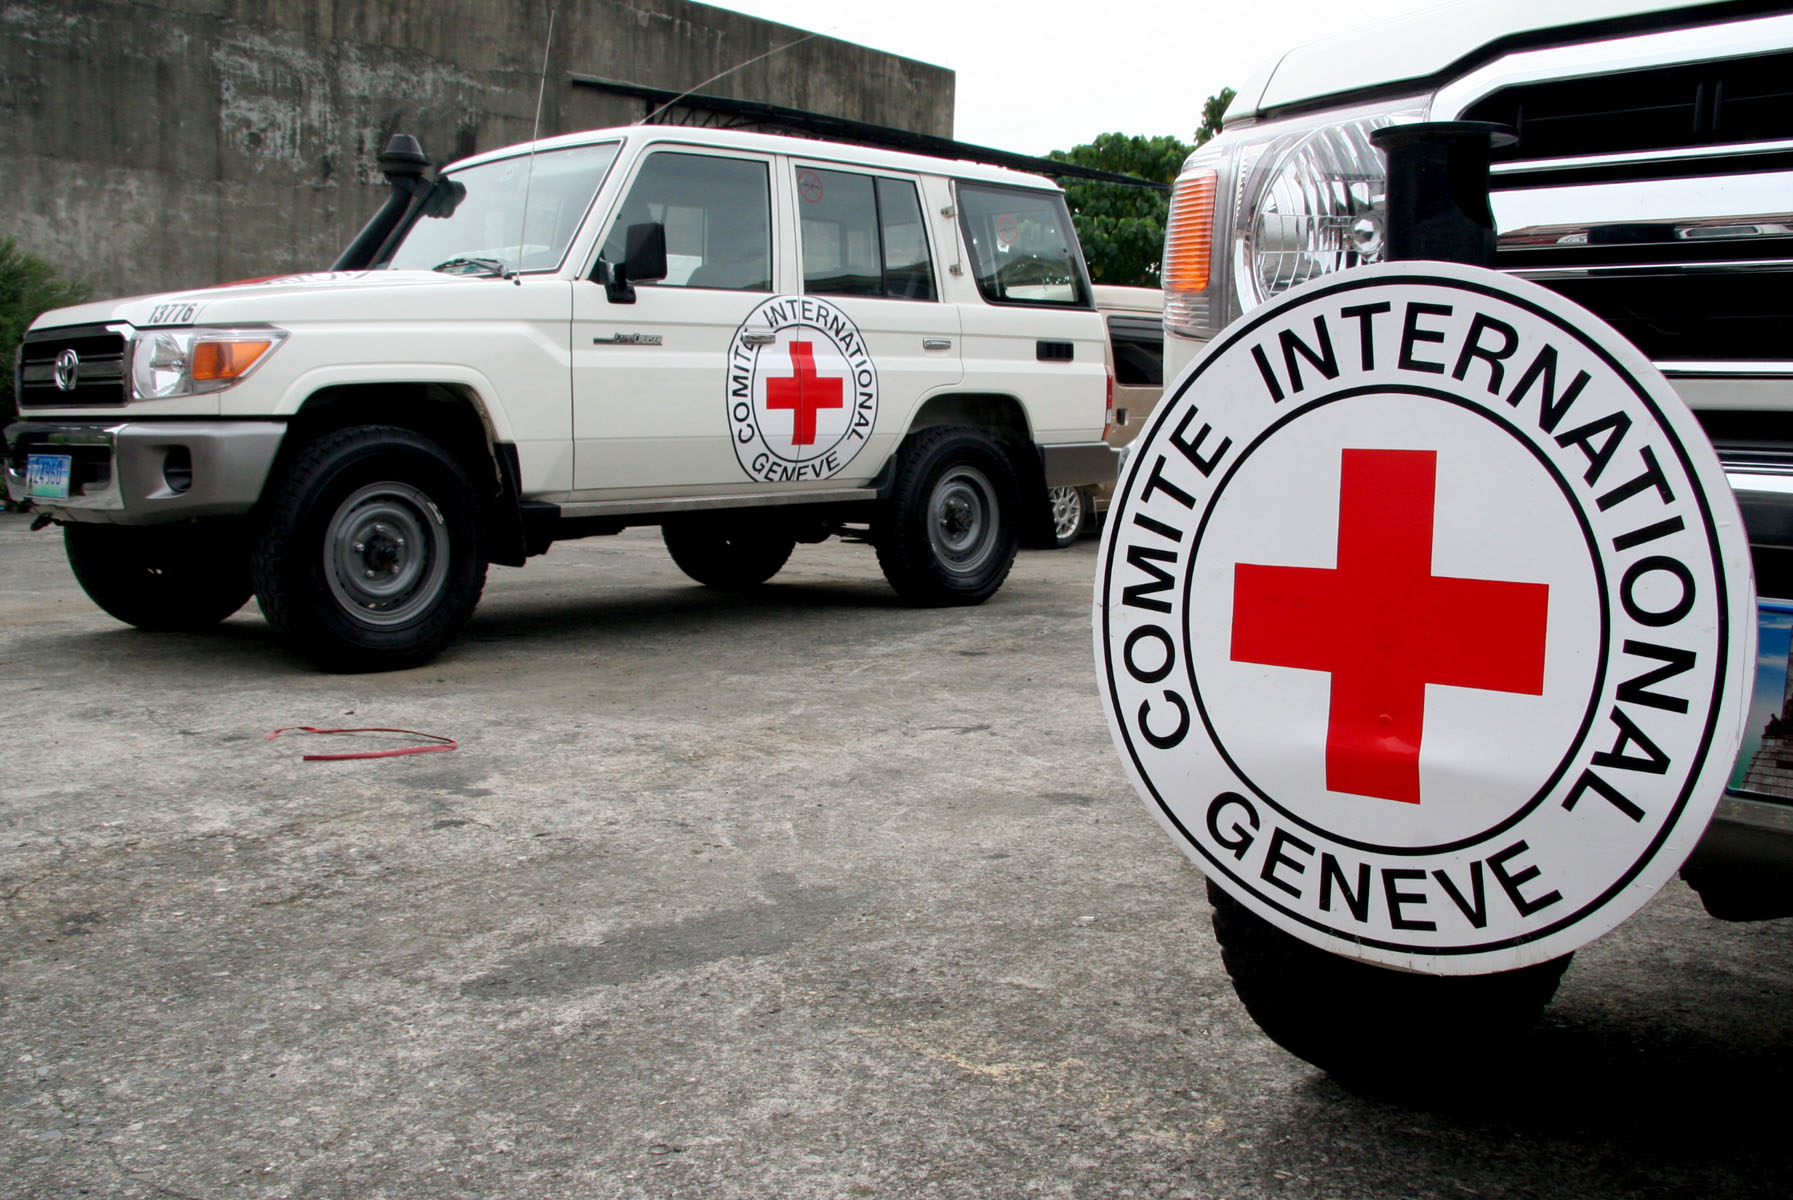 ICRC vehicles are grounded in a compound in the southern Philippine city of Davao City as troops search for three abducted ICRC staff in the volatile island of Jolo